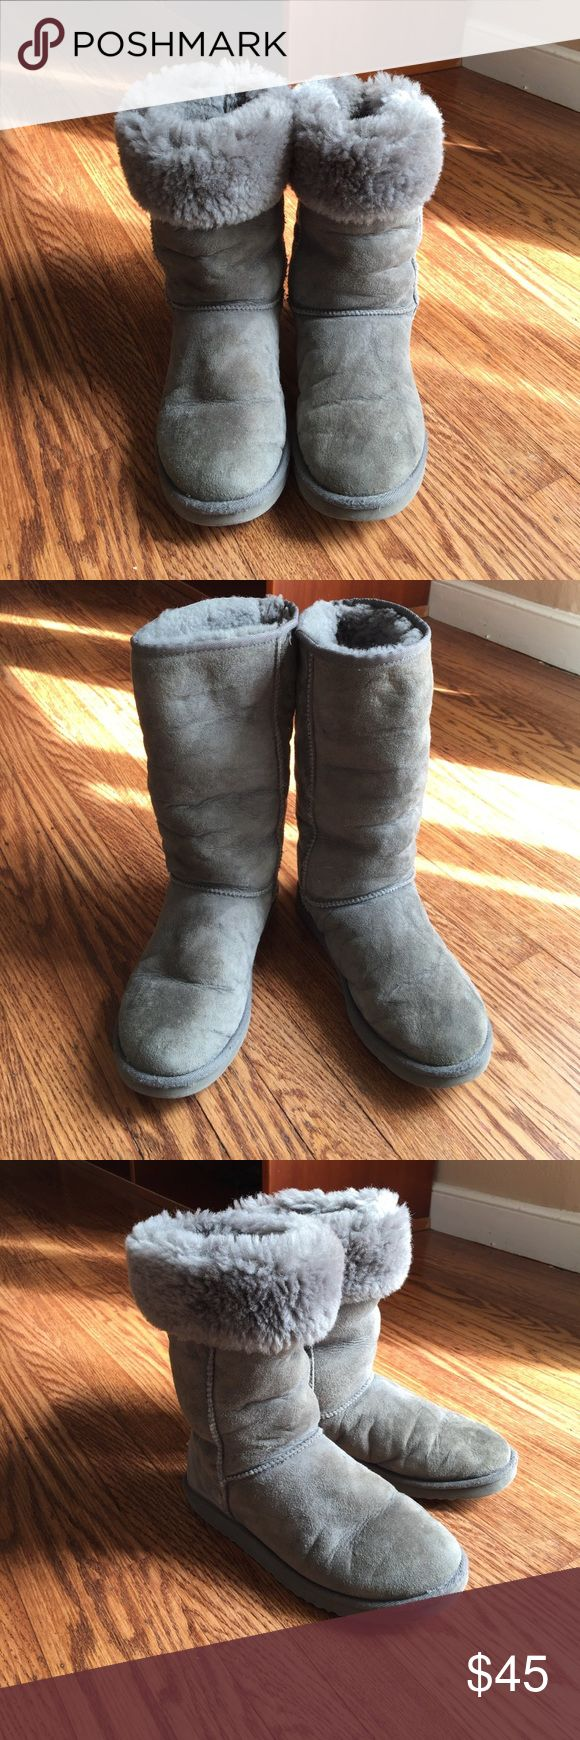 UGG Classic Tall Boots in Gray Classic Tall Boots in Gray. No box. Size 8 UGG Shoes Winter & Rain Boots